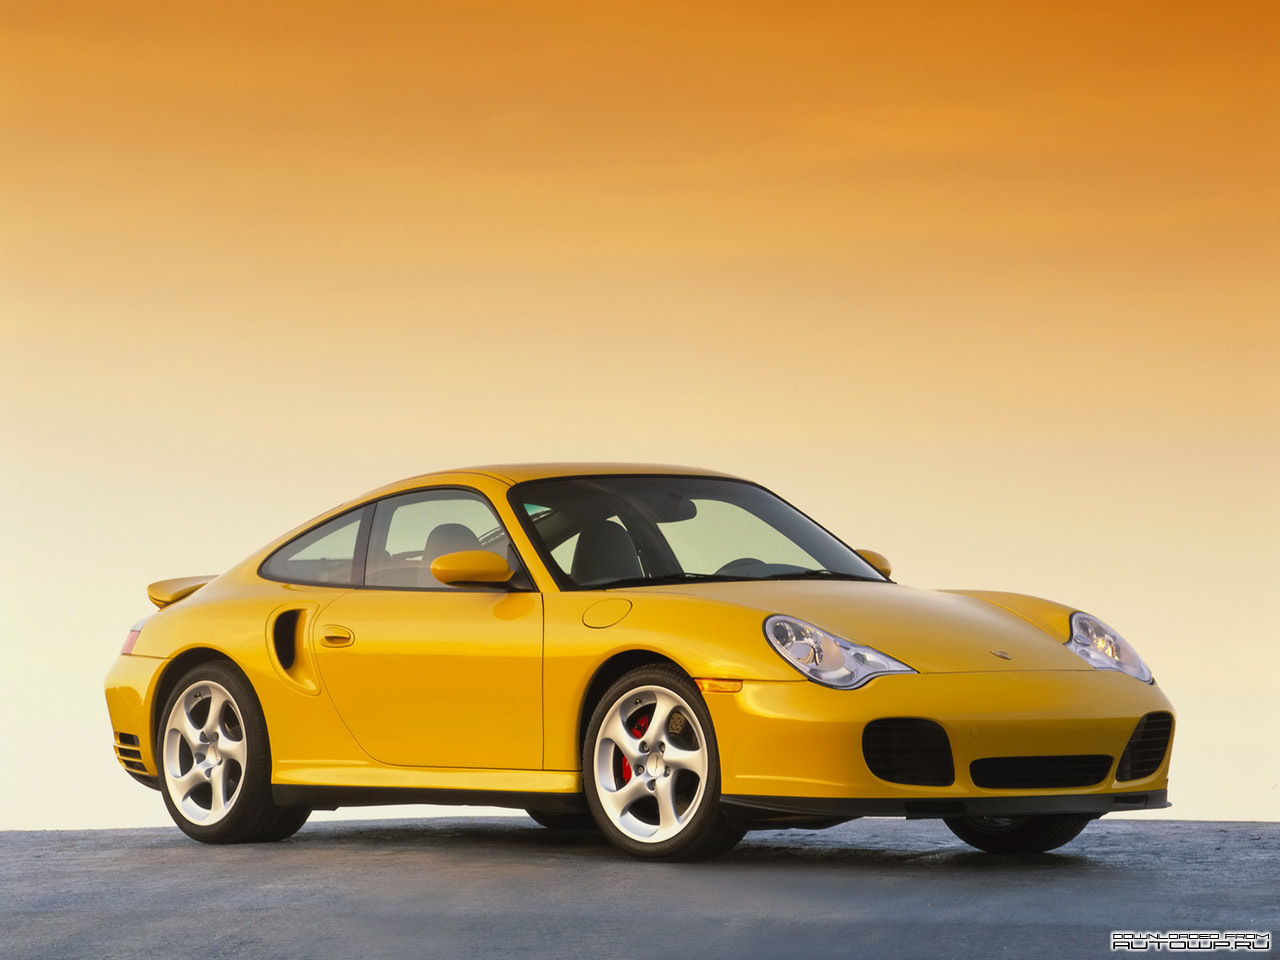 Porsche 911 Turbo (996) photo 75315